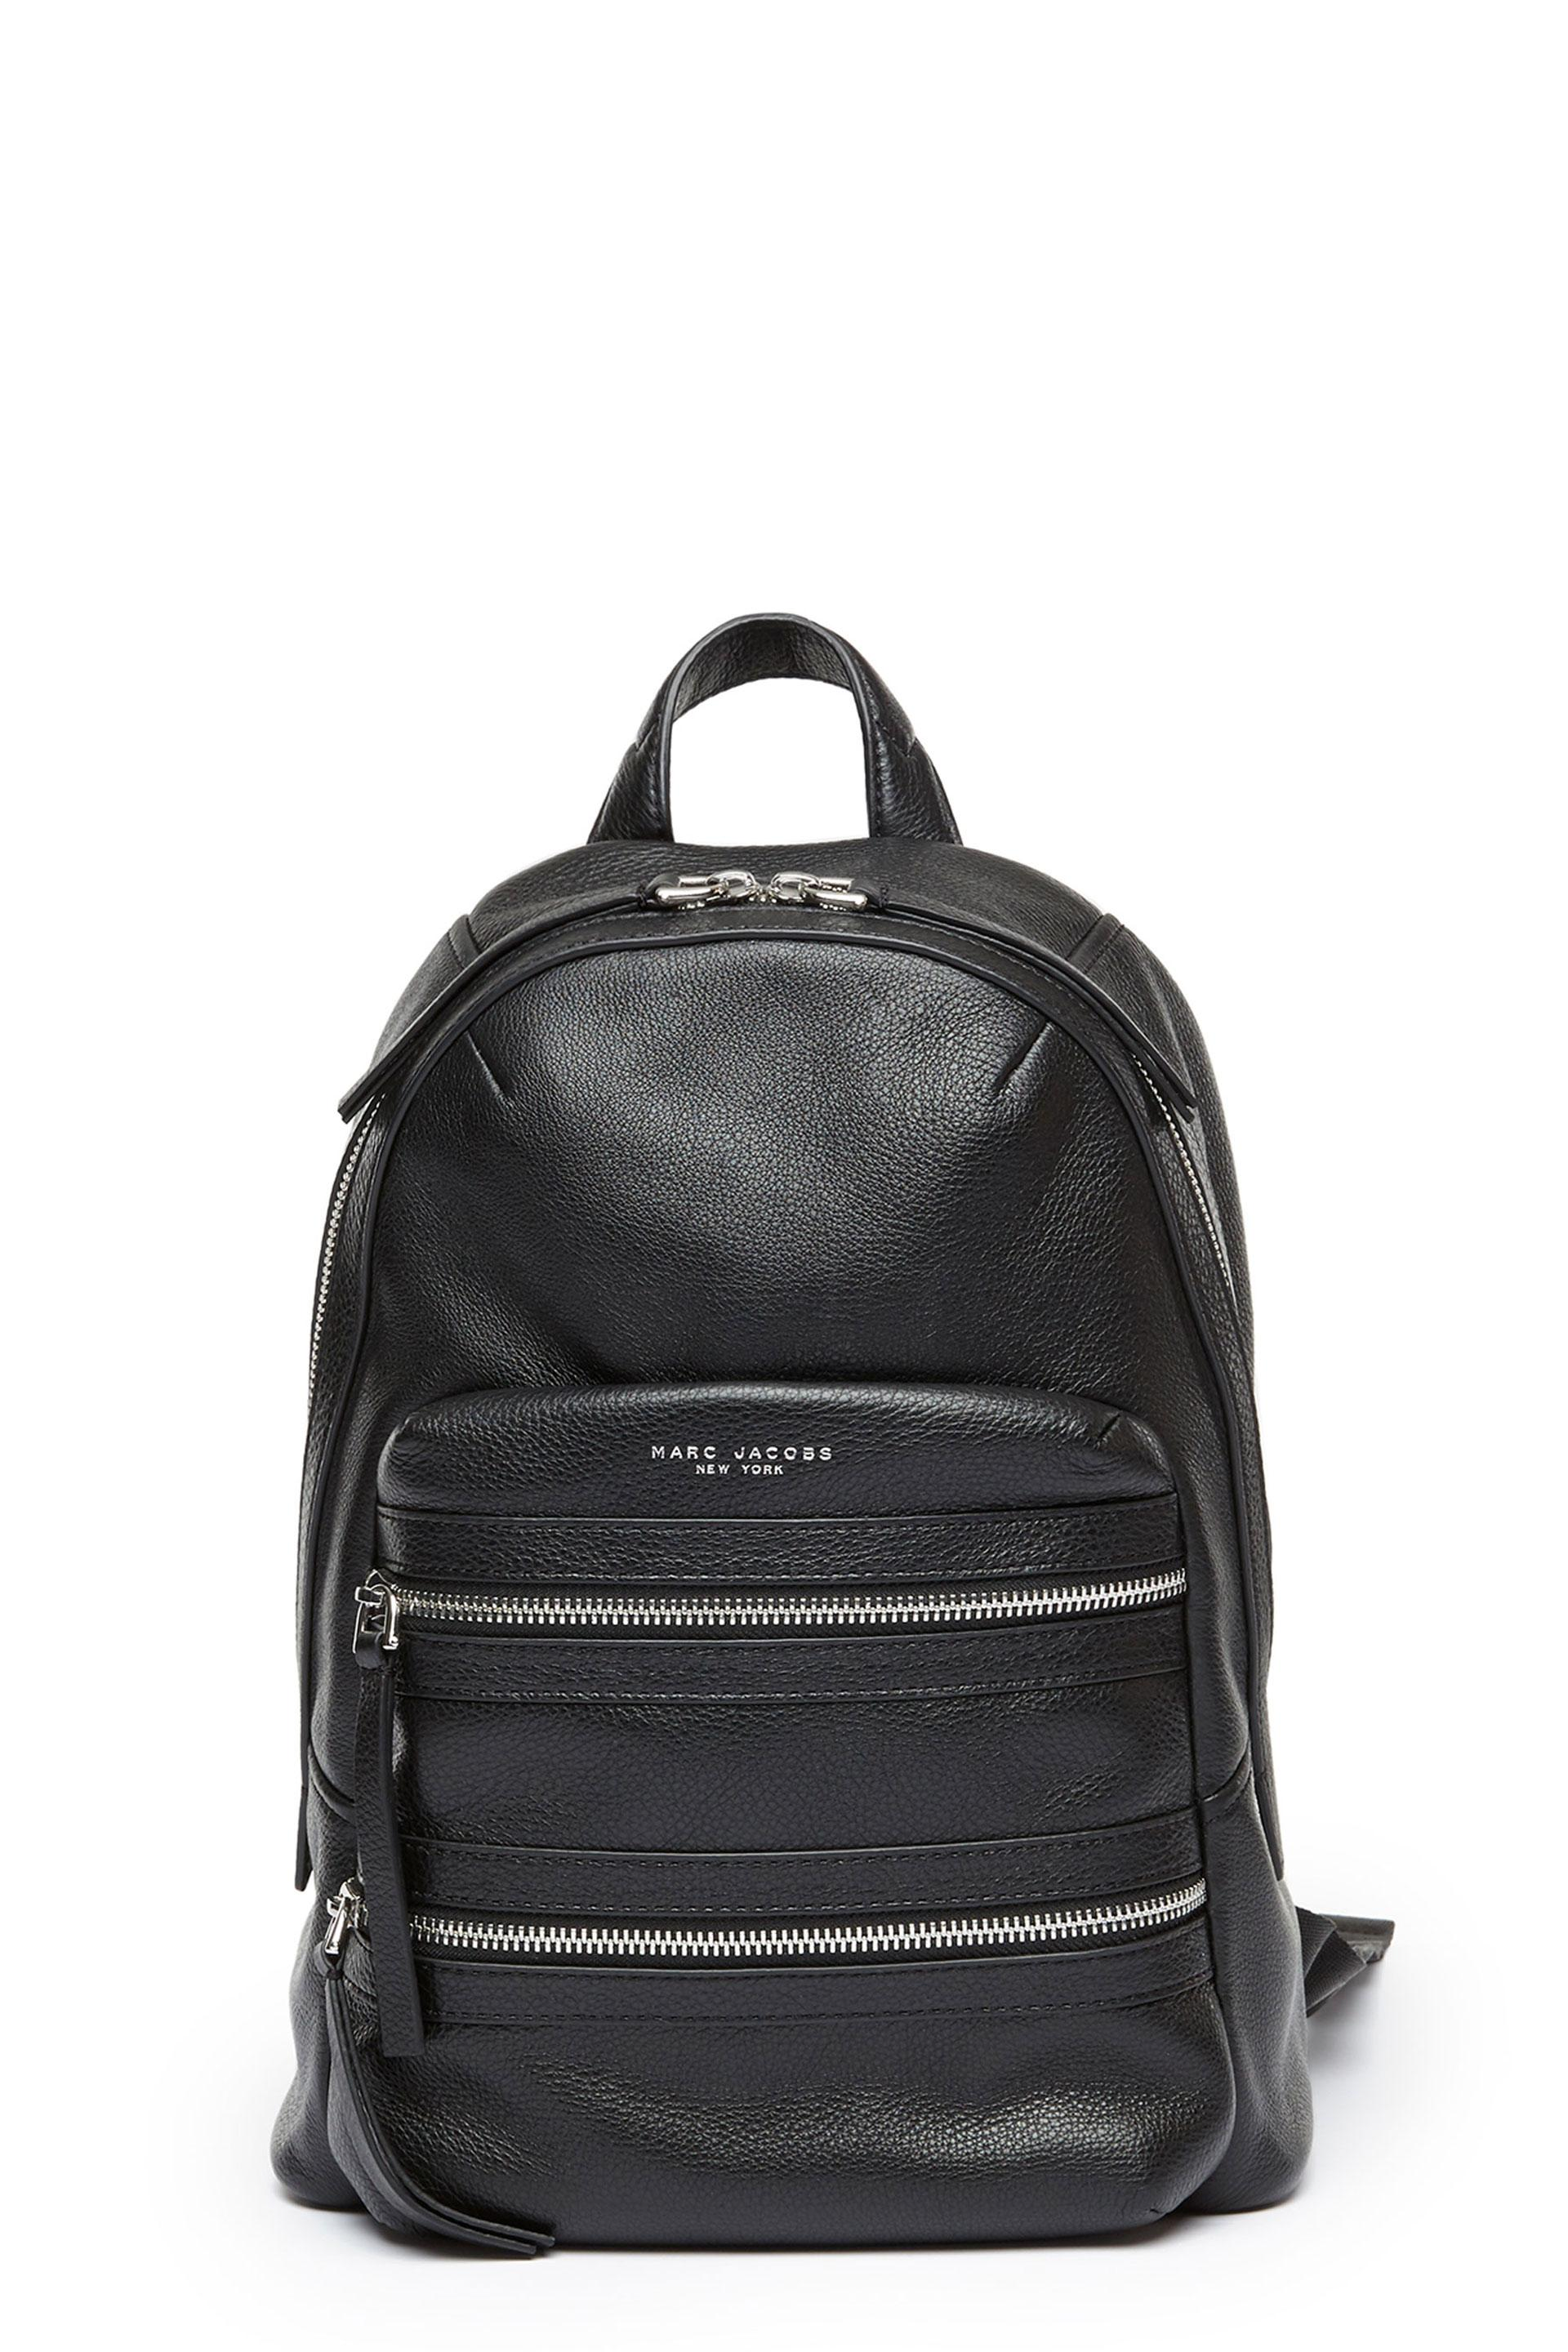 marc jacobs biker large leather backpack. Black Bedroom Furniture Sets. Home Design Ideas